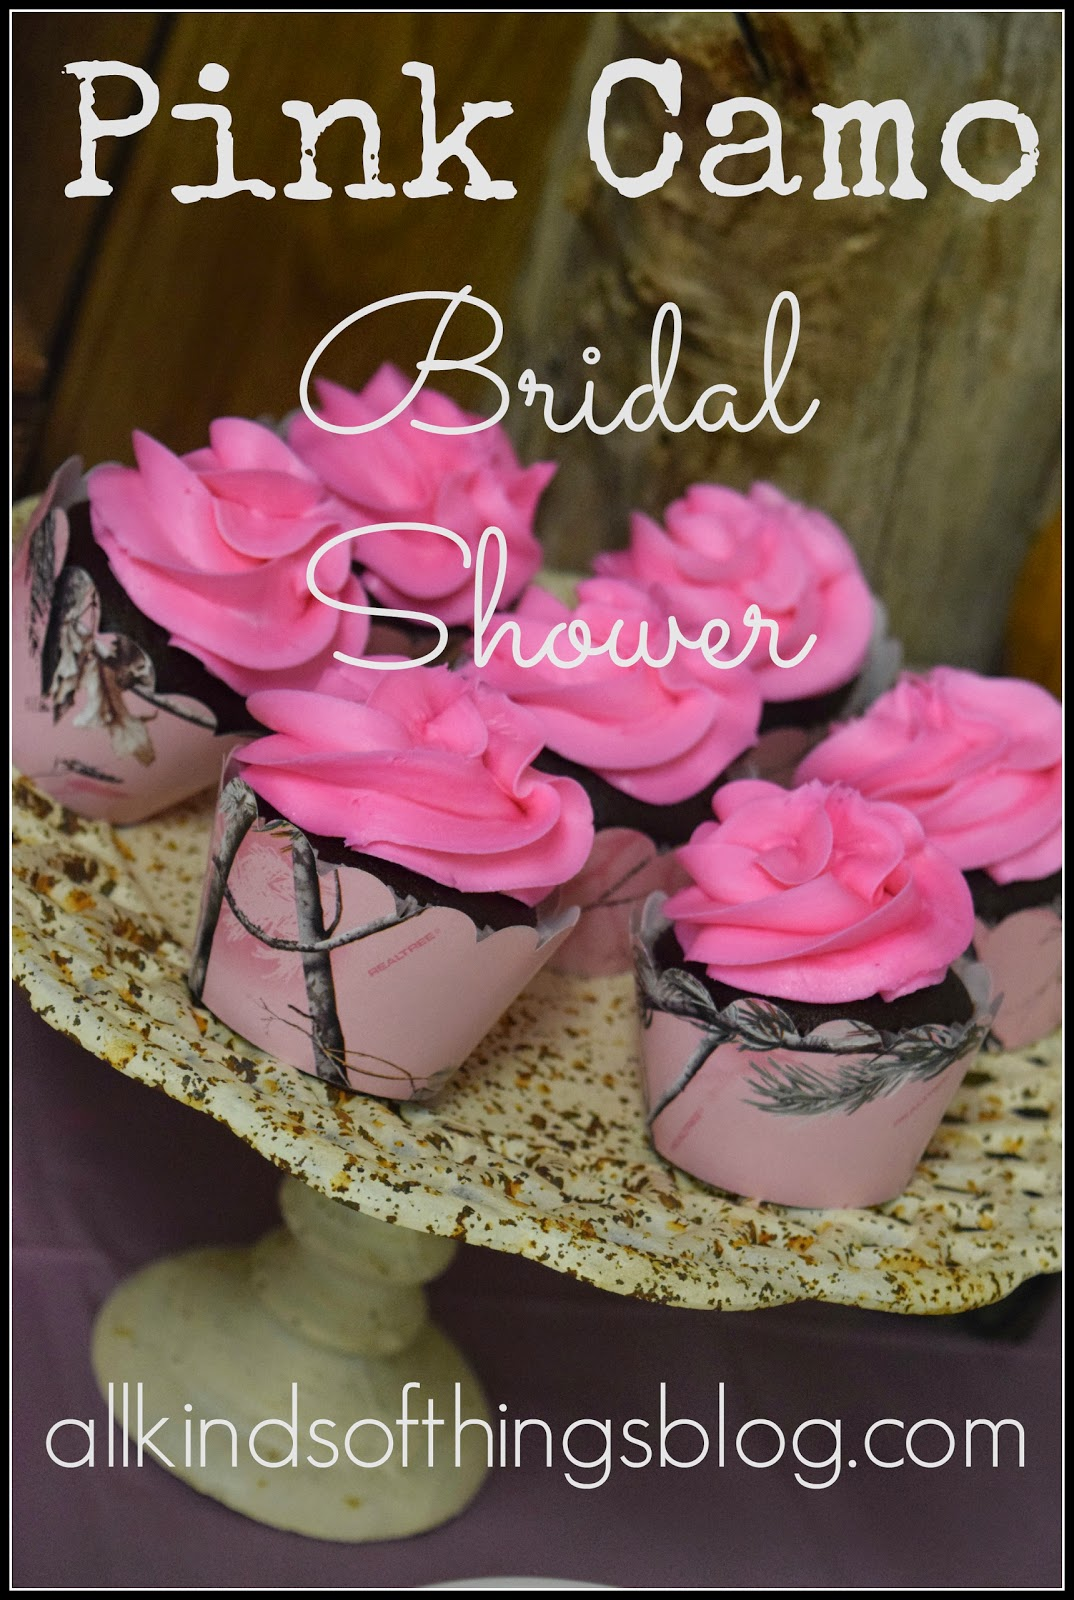 All Kinds of Things: Pink Camo Bridal Shower